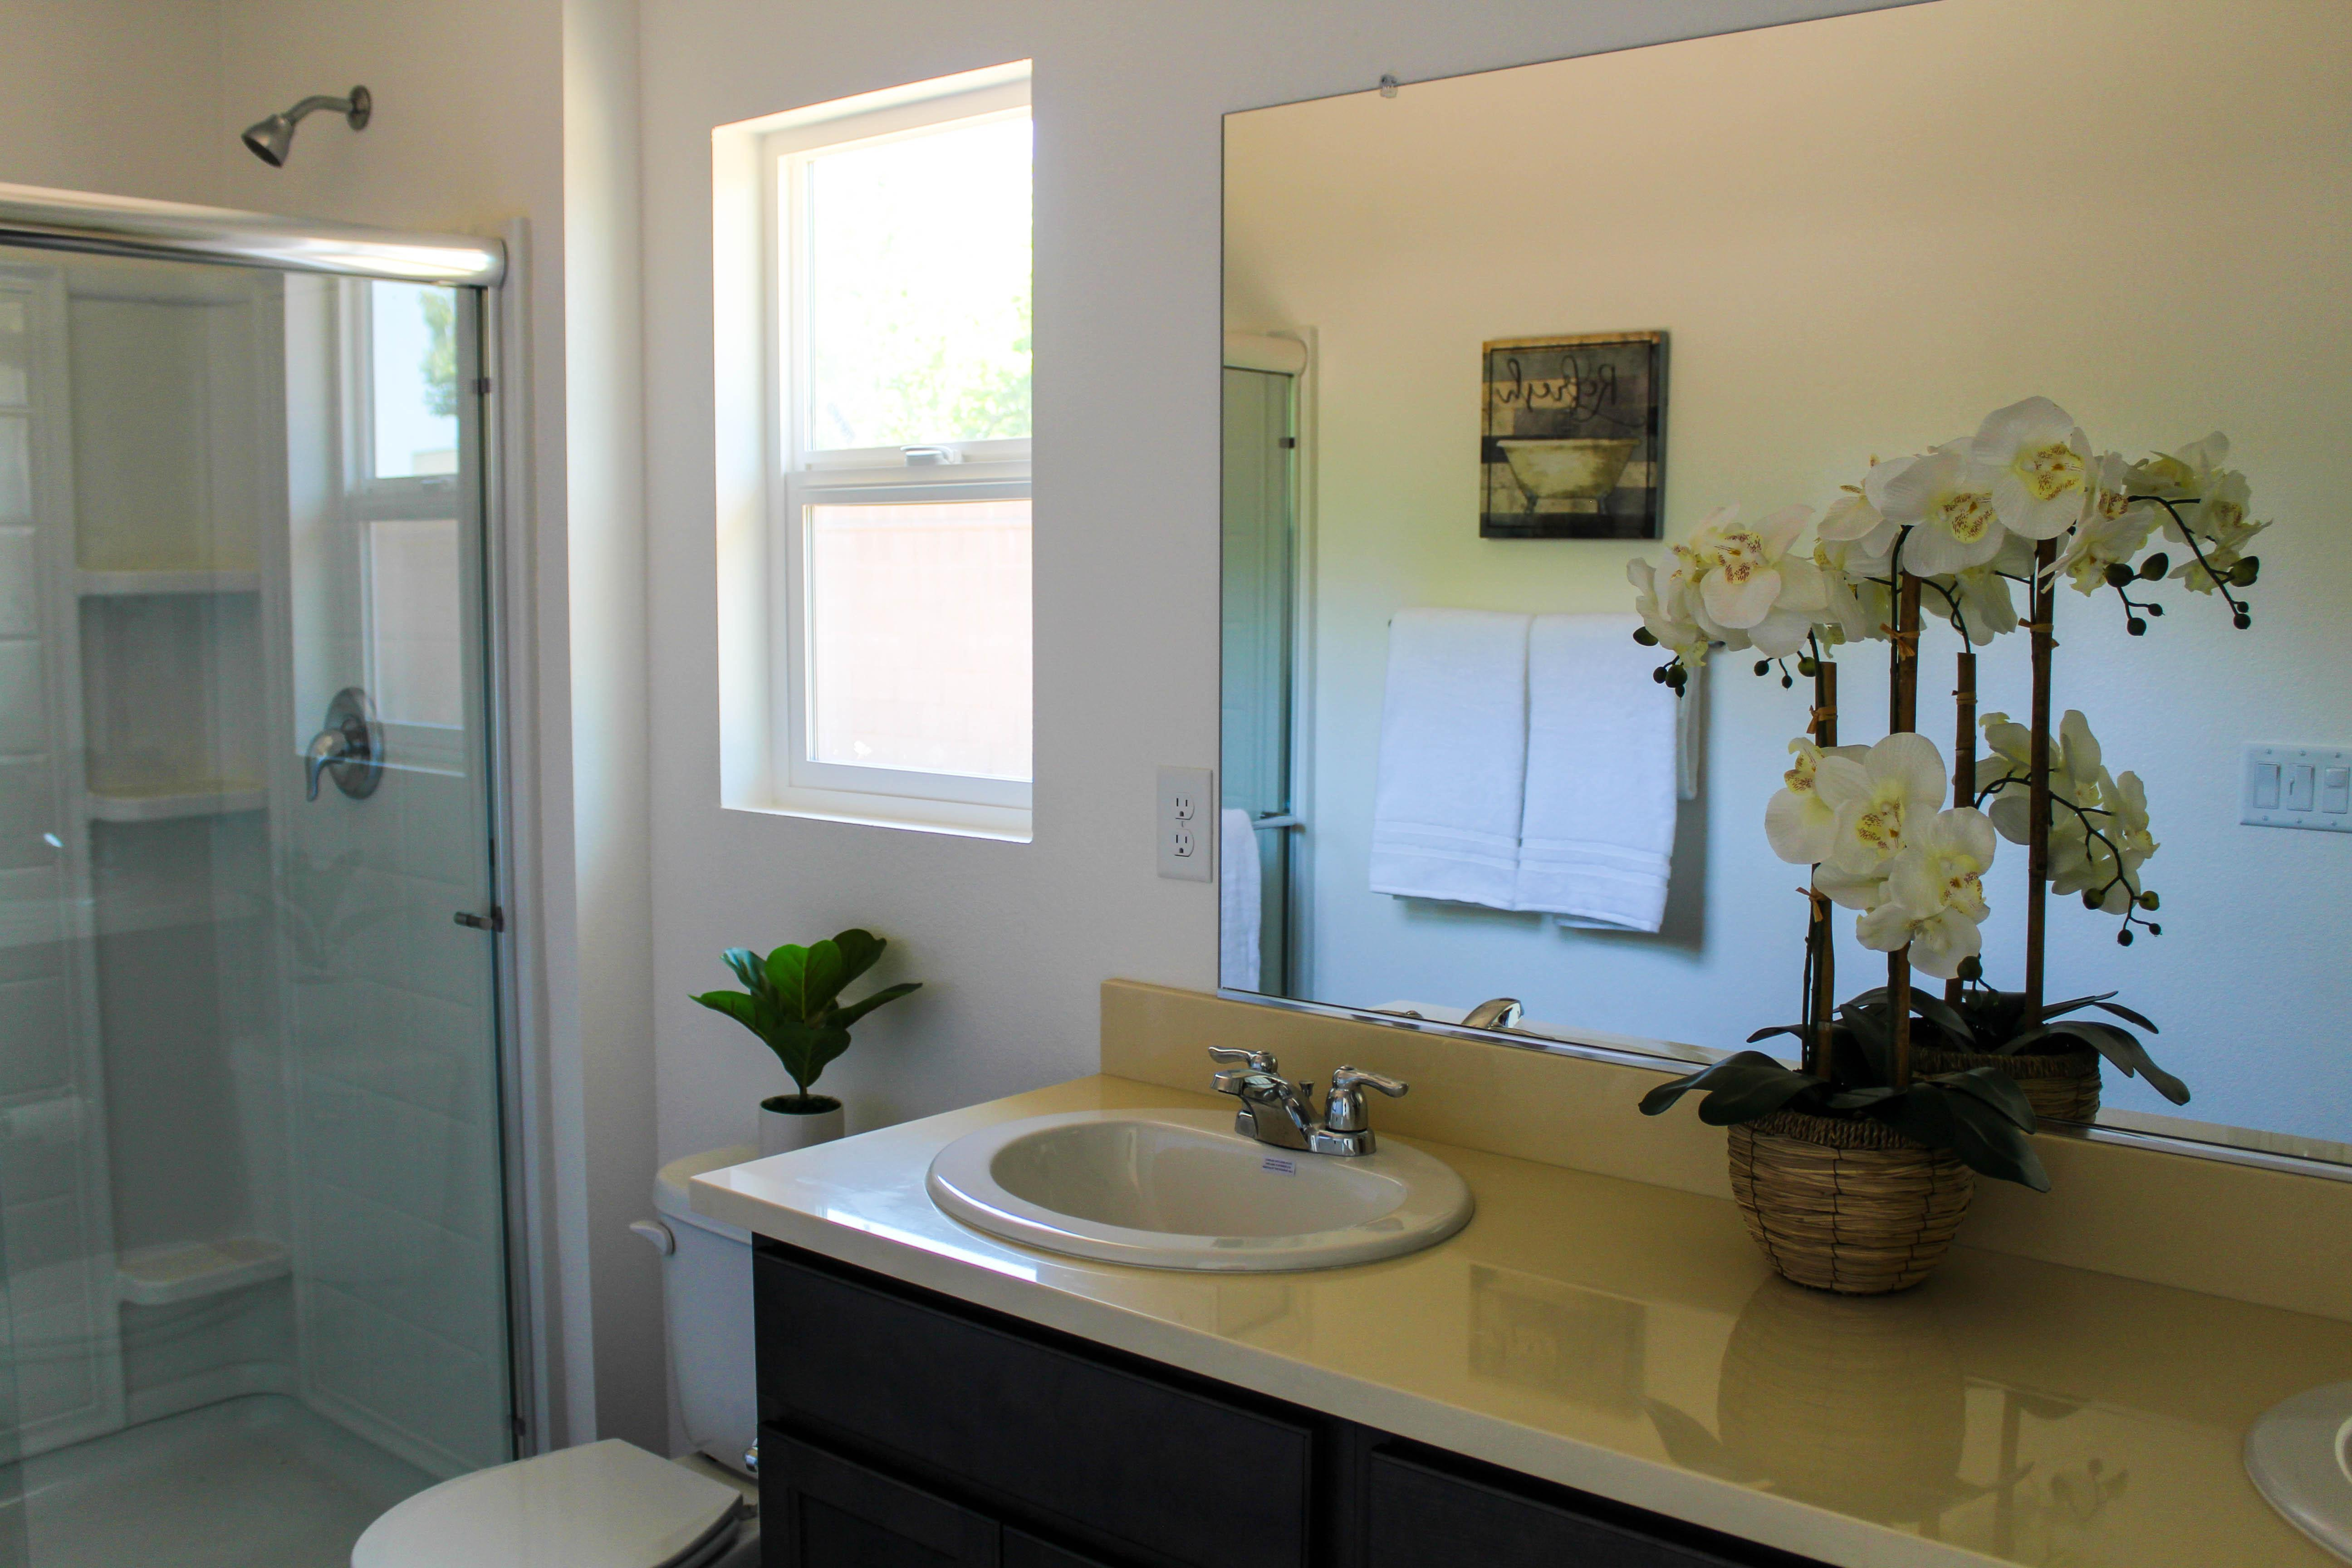 Bathroom featured in the 2B By Crowne Communities in Chico, CA